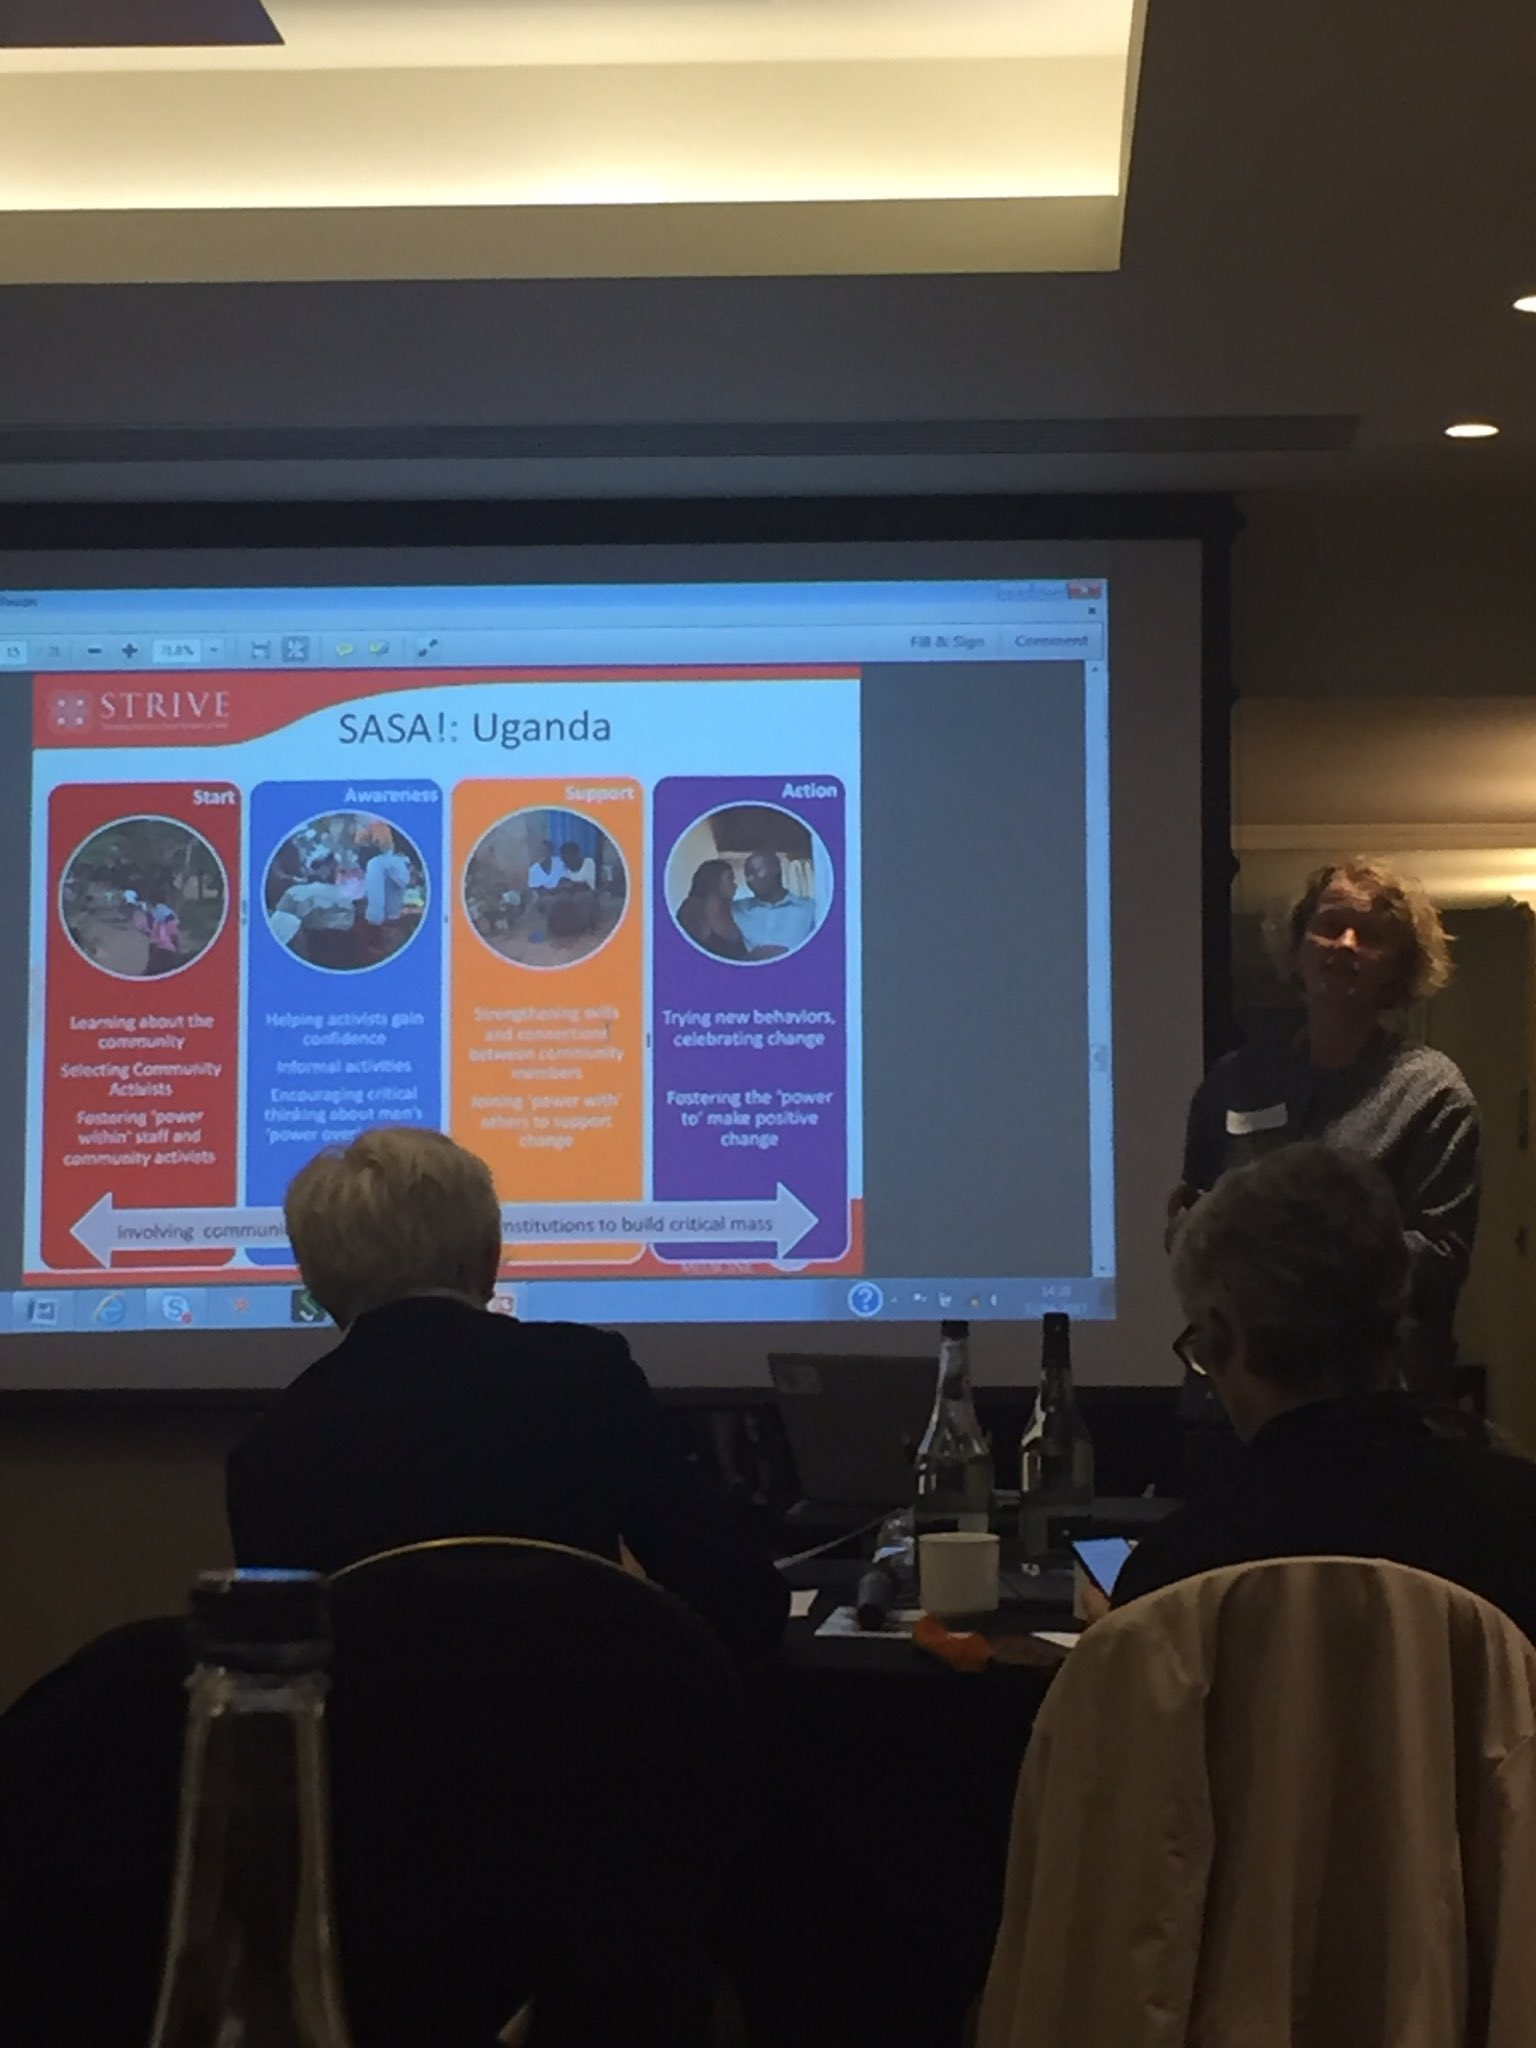 Prof Charlotte Watts from @hivdrivers tells us about preventing violence via community education programmes #swiftwomen https://t.co/DHzSjI4mJb